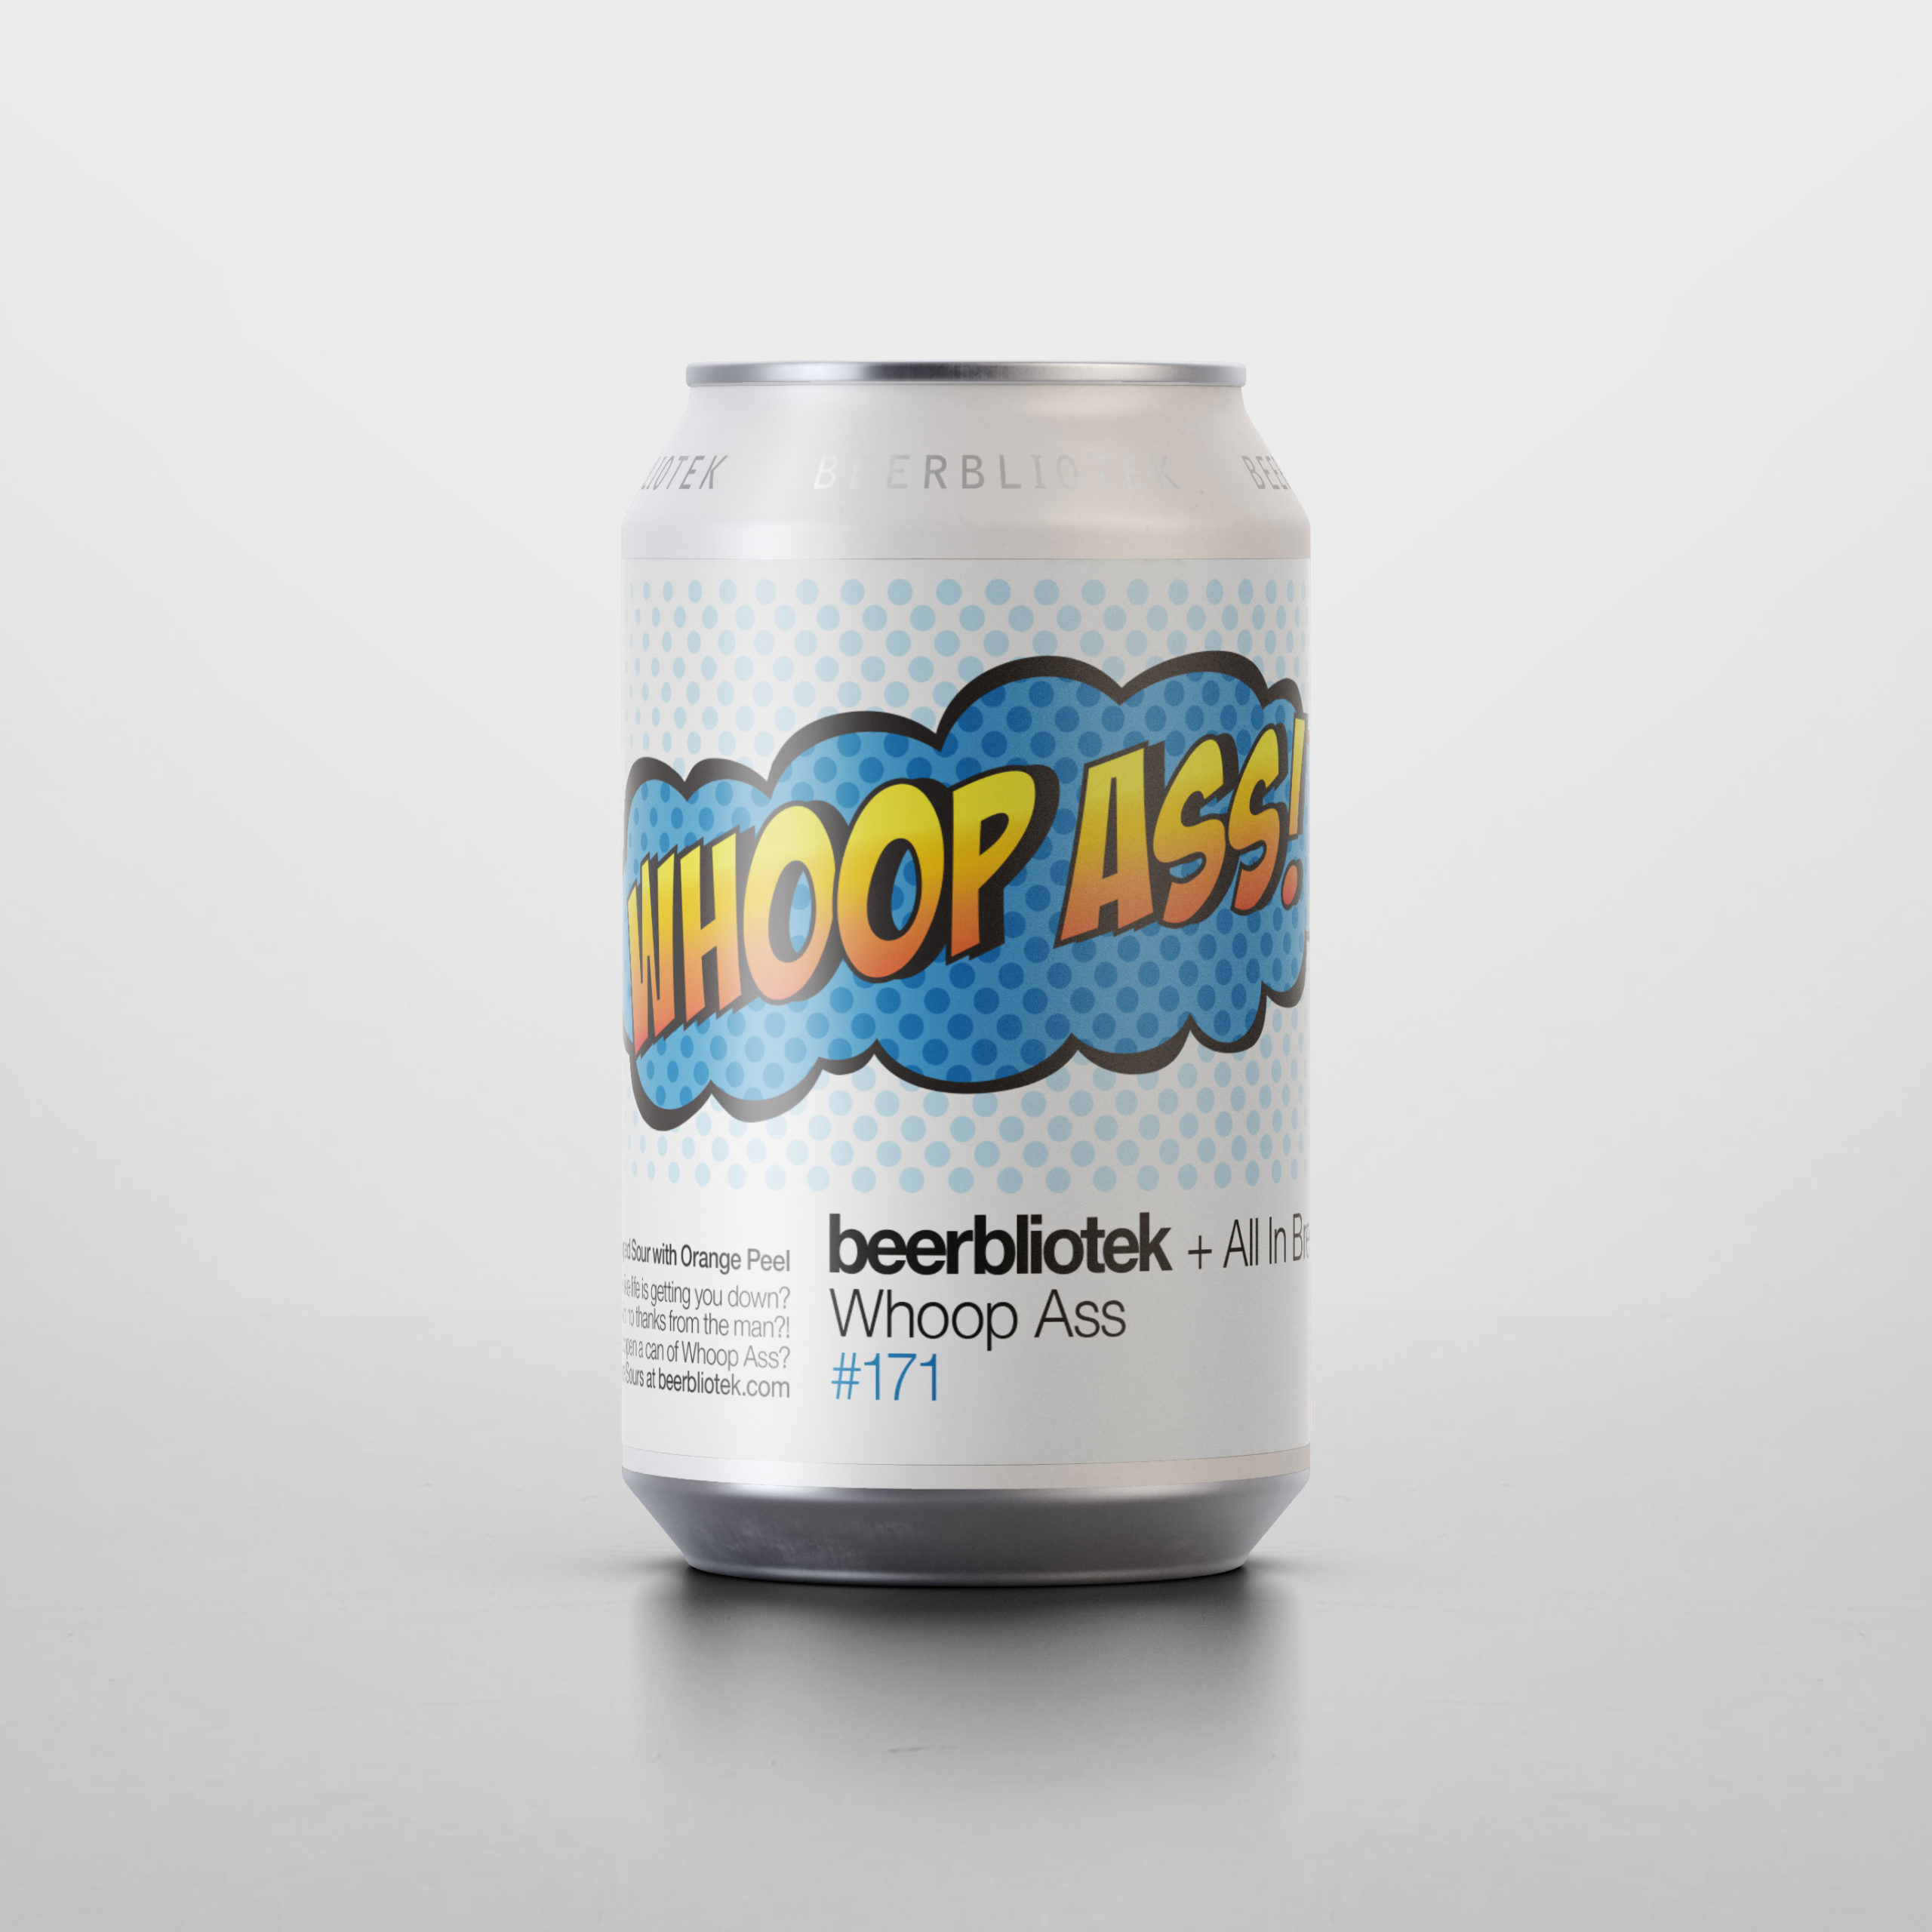 A can packshot of Whoop Ass, a dry hopped berliner brewed by Beerbliotek, a craft brewery from Gothenburg, Sweden.